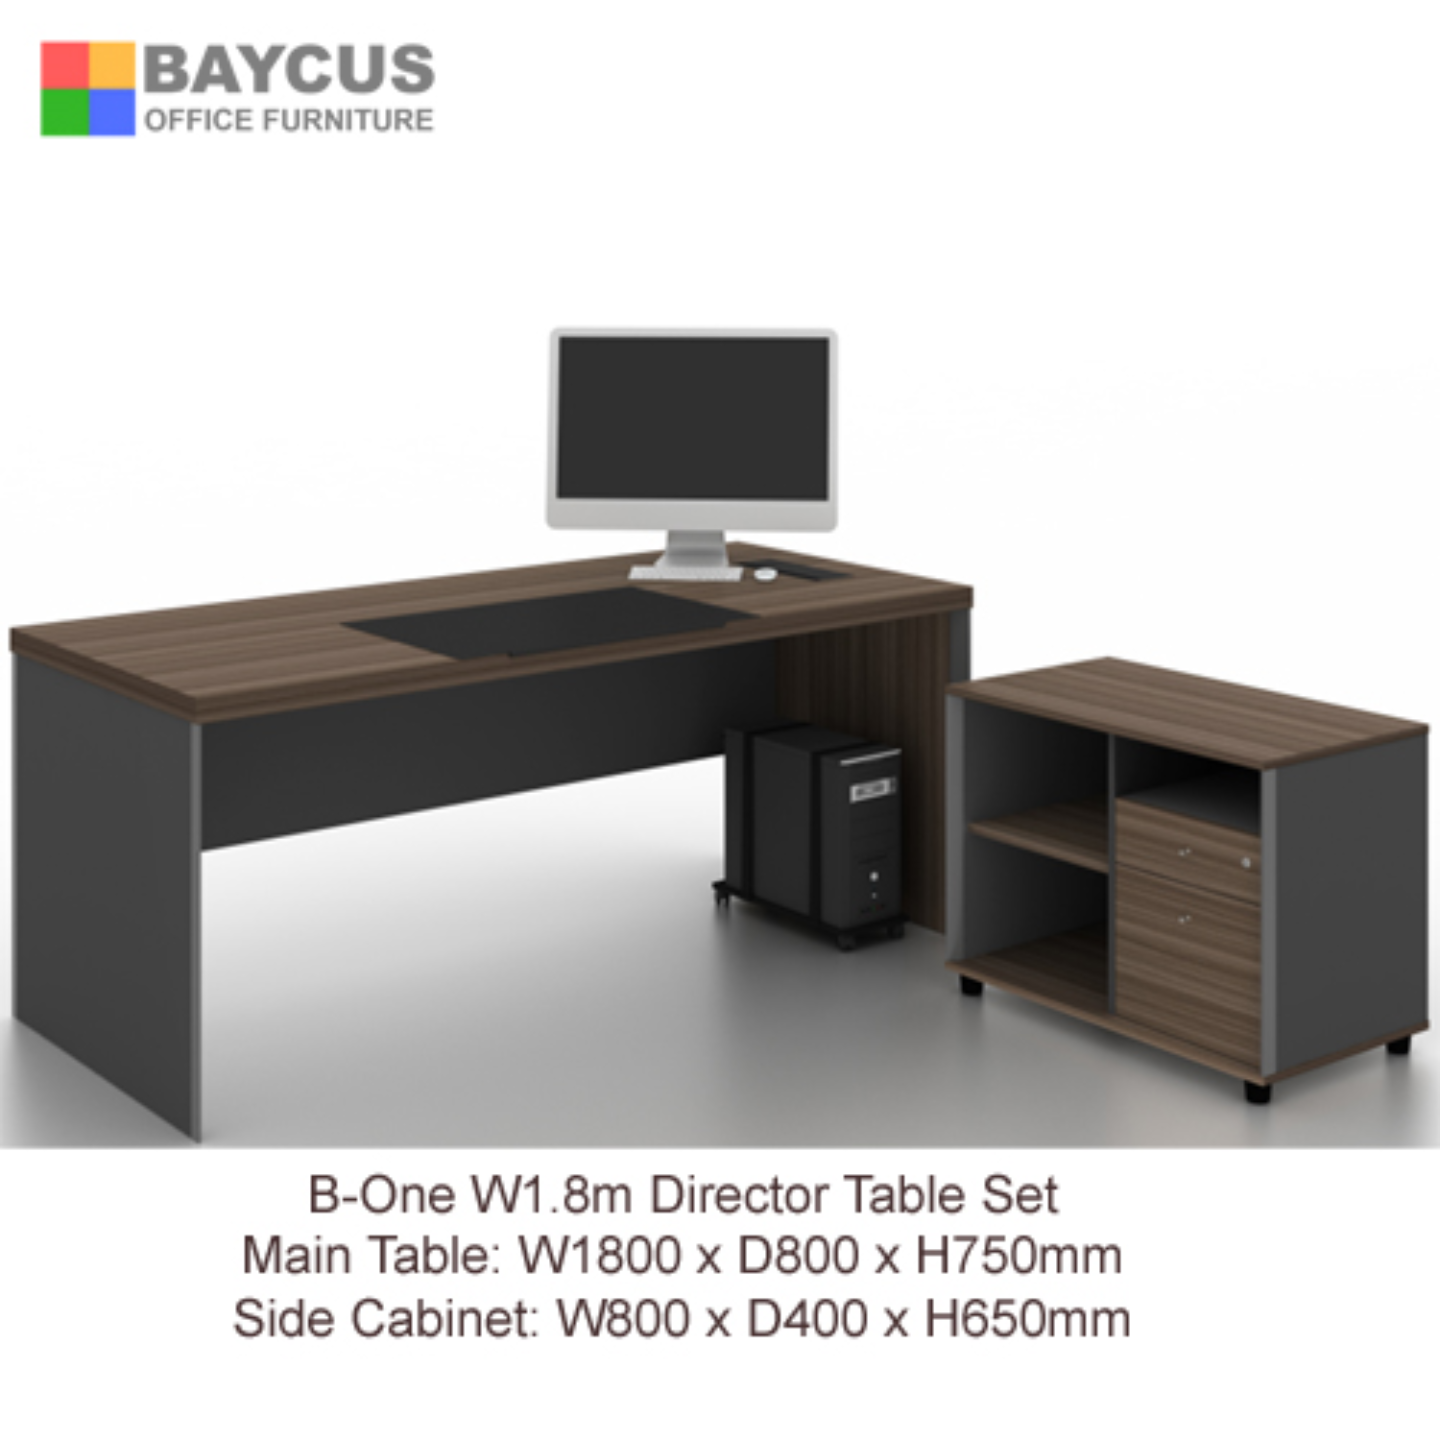 B-One 1.8m Director Table Set (Wooden Leg) - Dark Brown